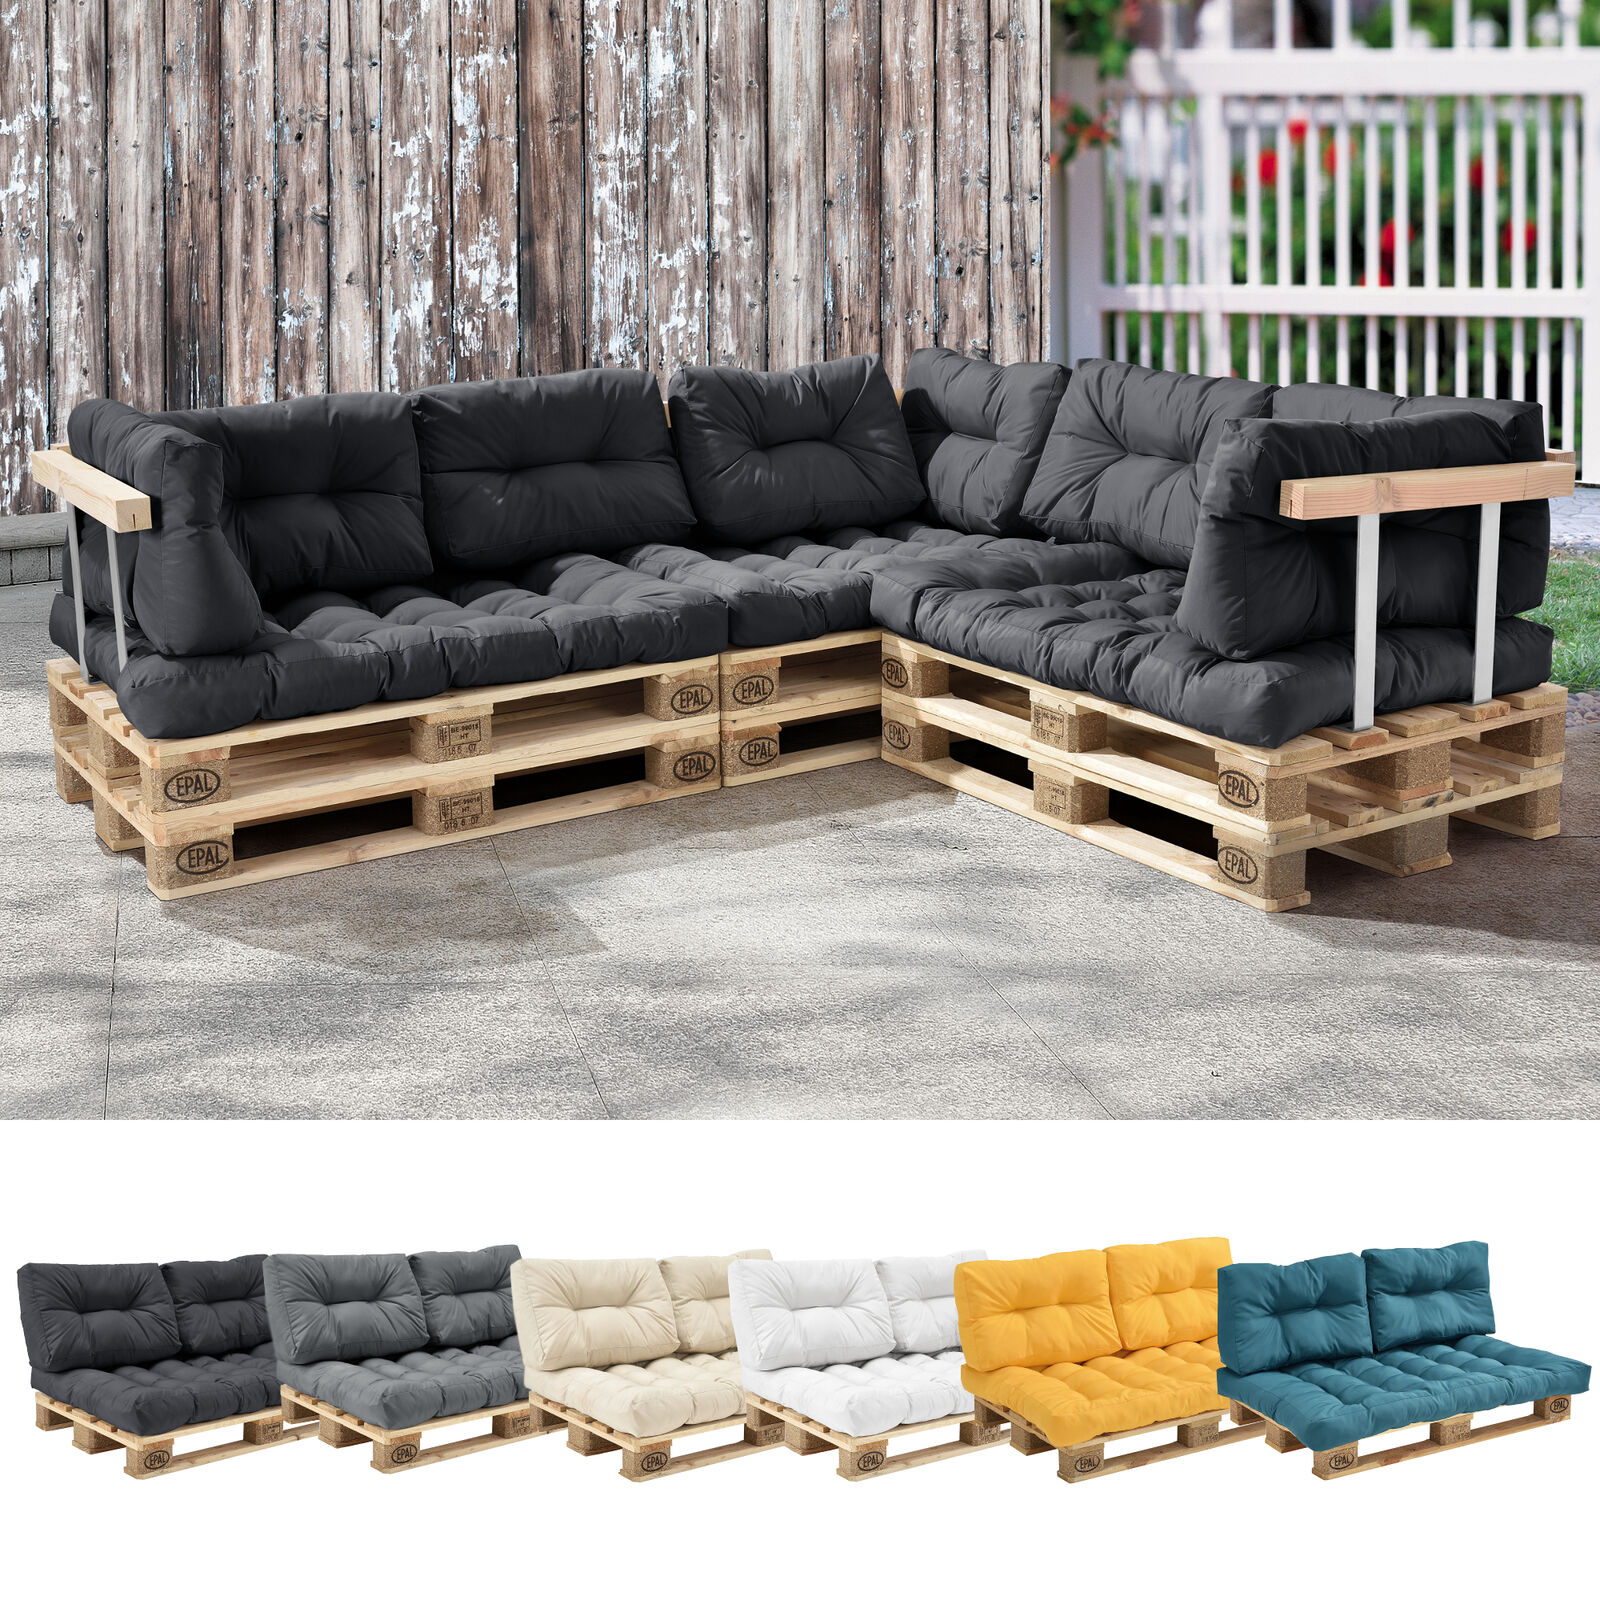 palettenkissen in outdoor paletten kissen sofa polster sitzauflage eur 34 19. Black Bedroom Furniture Sets. Home Design Ideas